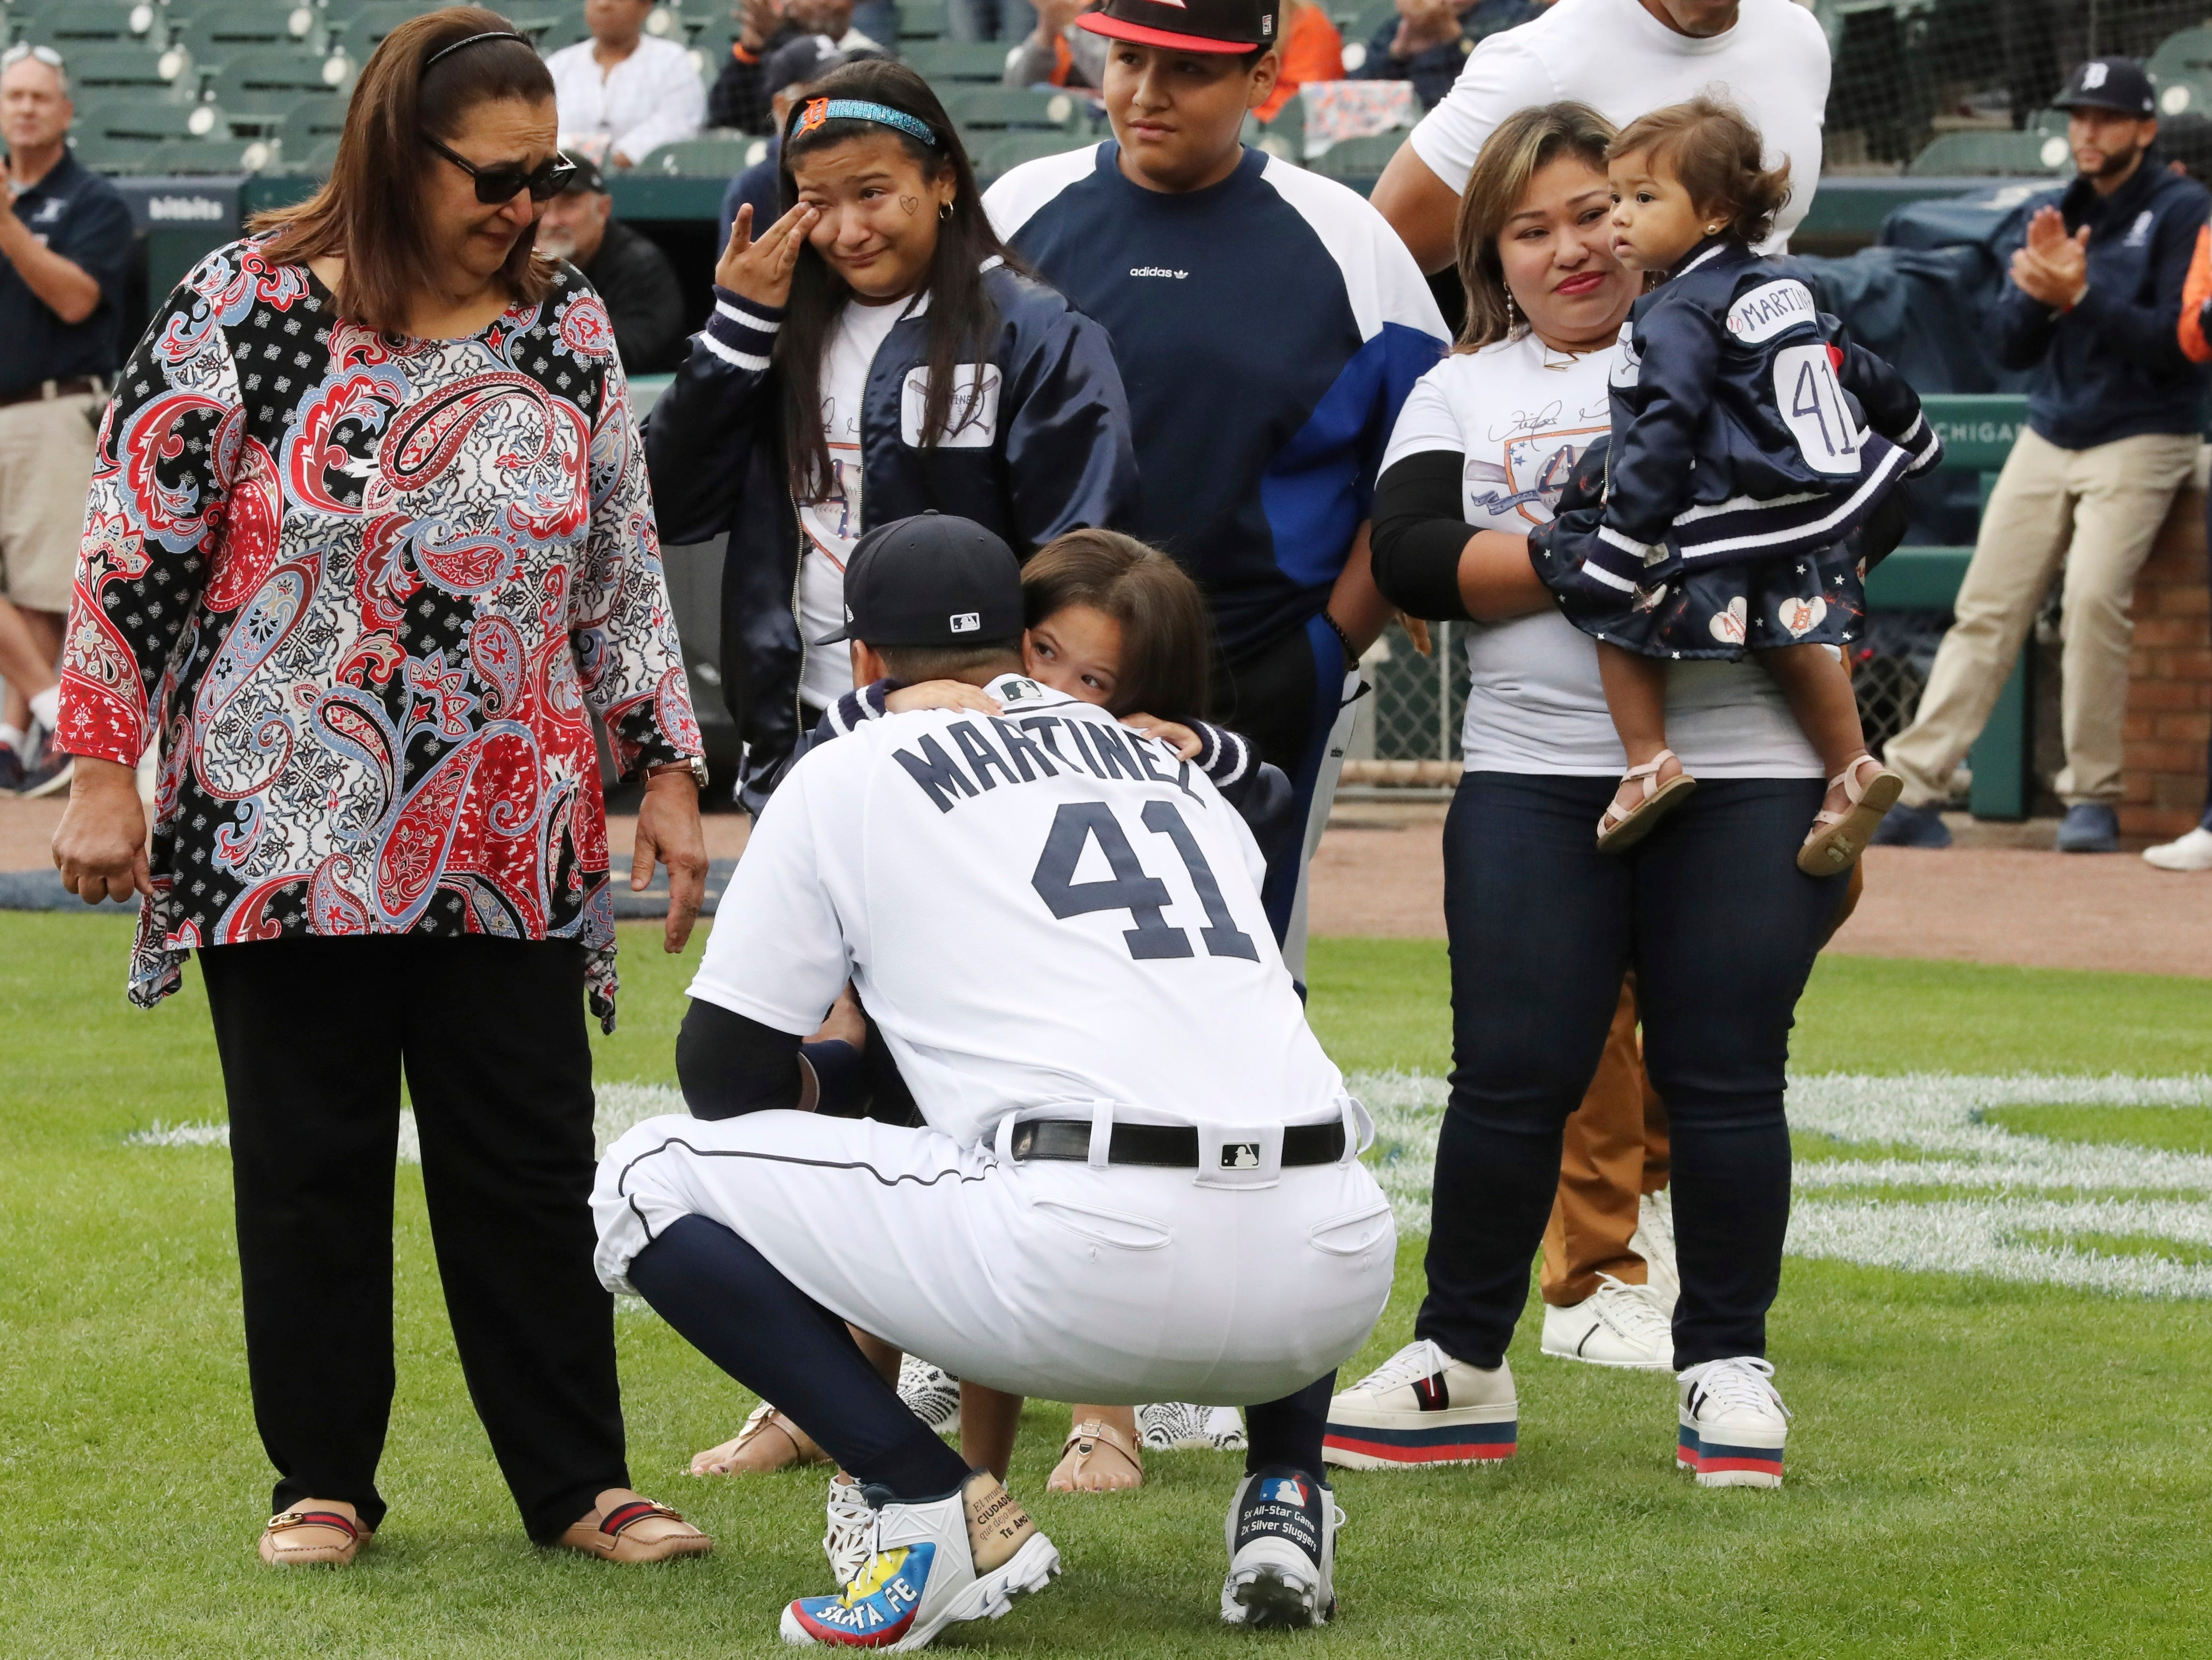 Tigers designated hitter Victor Martinez hugs a family member before the game against the Royals on Saturday, Sept. 22, 2018, at Comerica park Martinez is playing his final game Saturday and said he wants his final at-bats to be in front of the home fans.